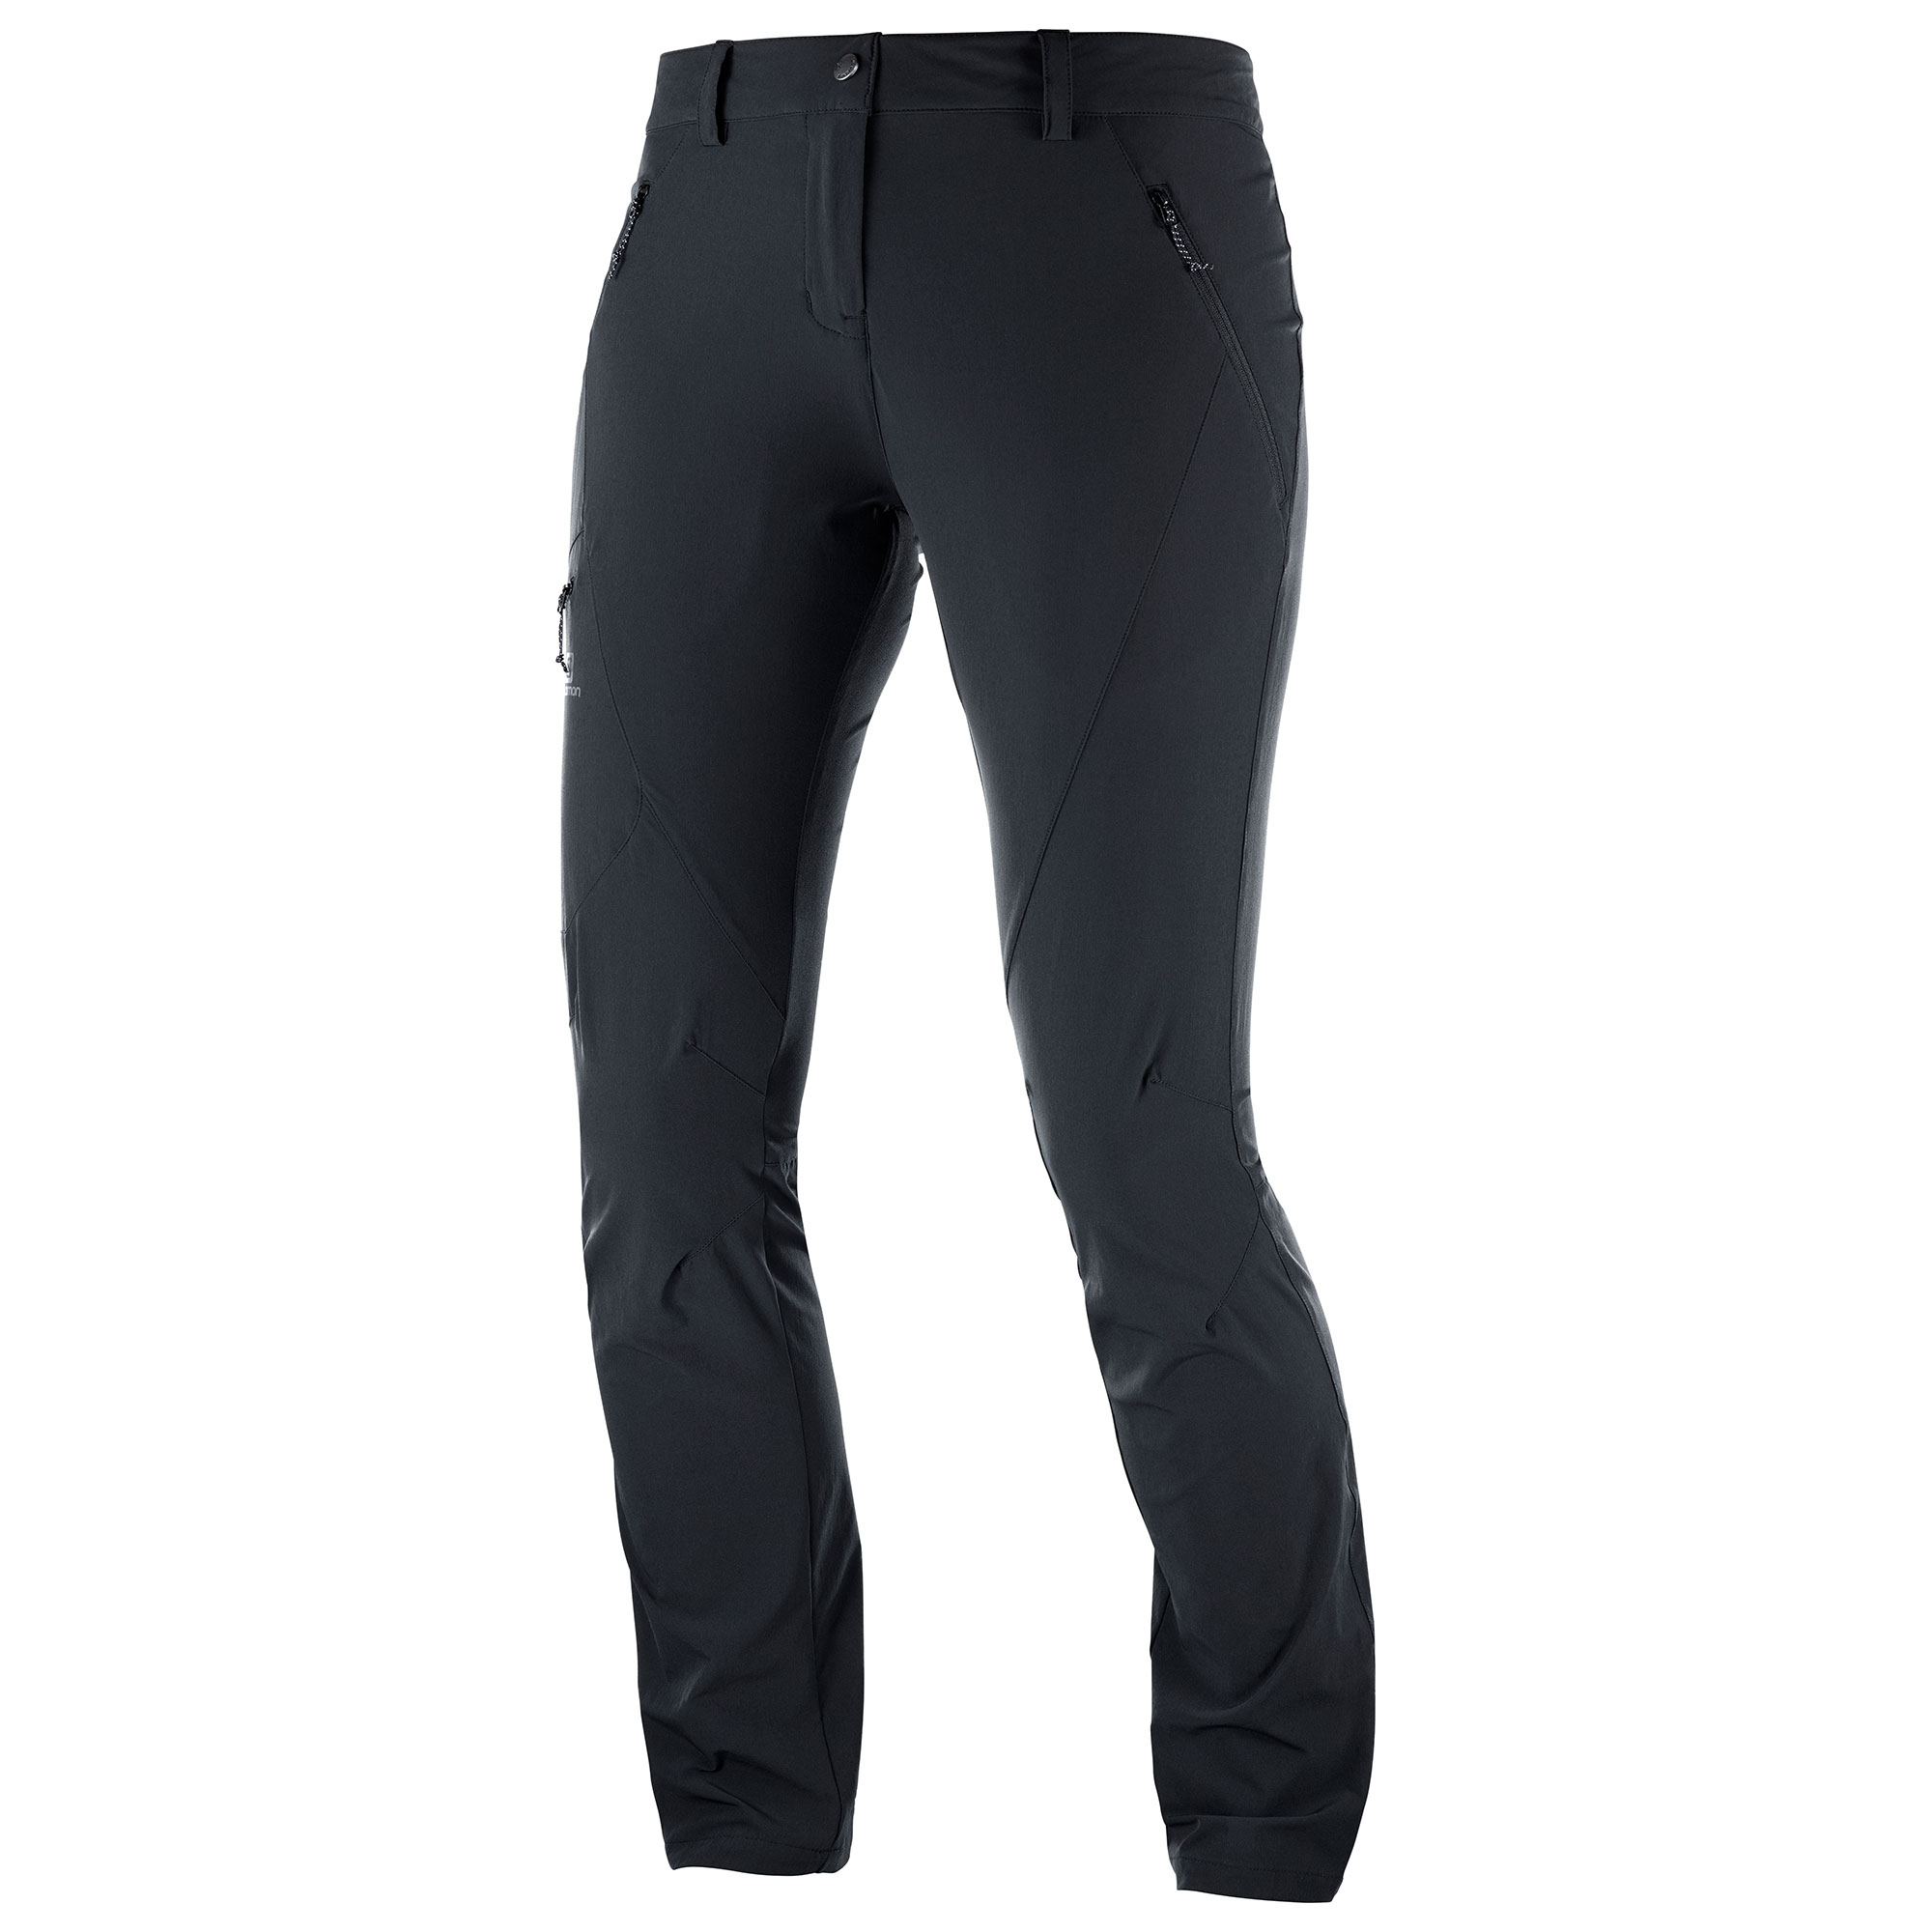 Wayfarer Tapered Pant Black - Women's